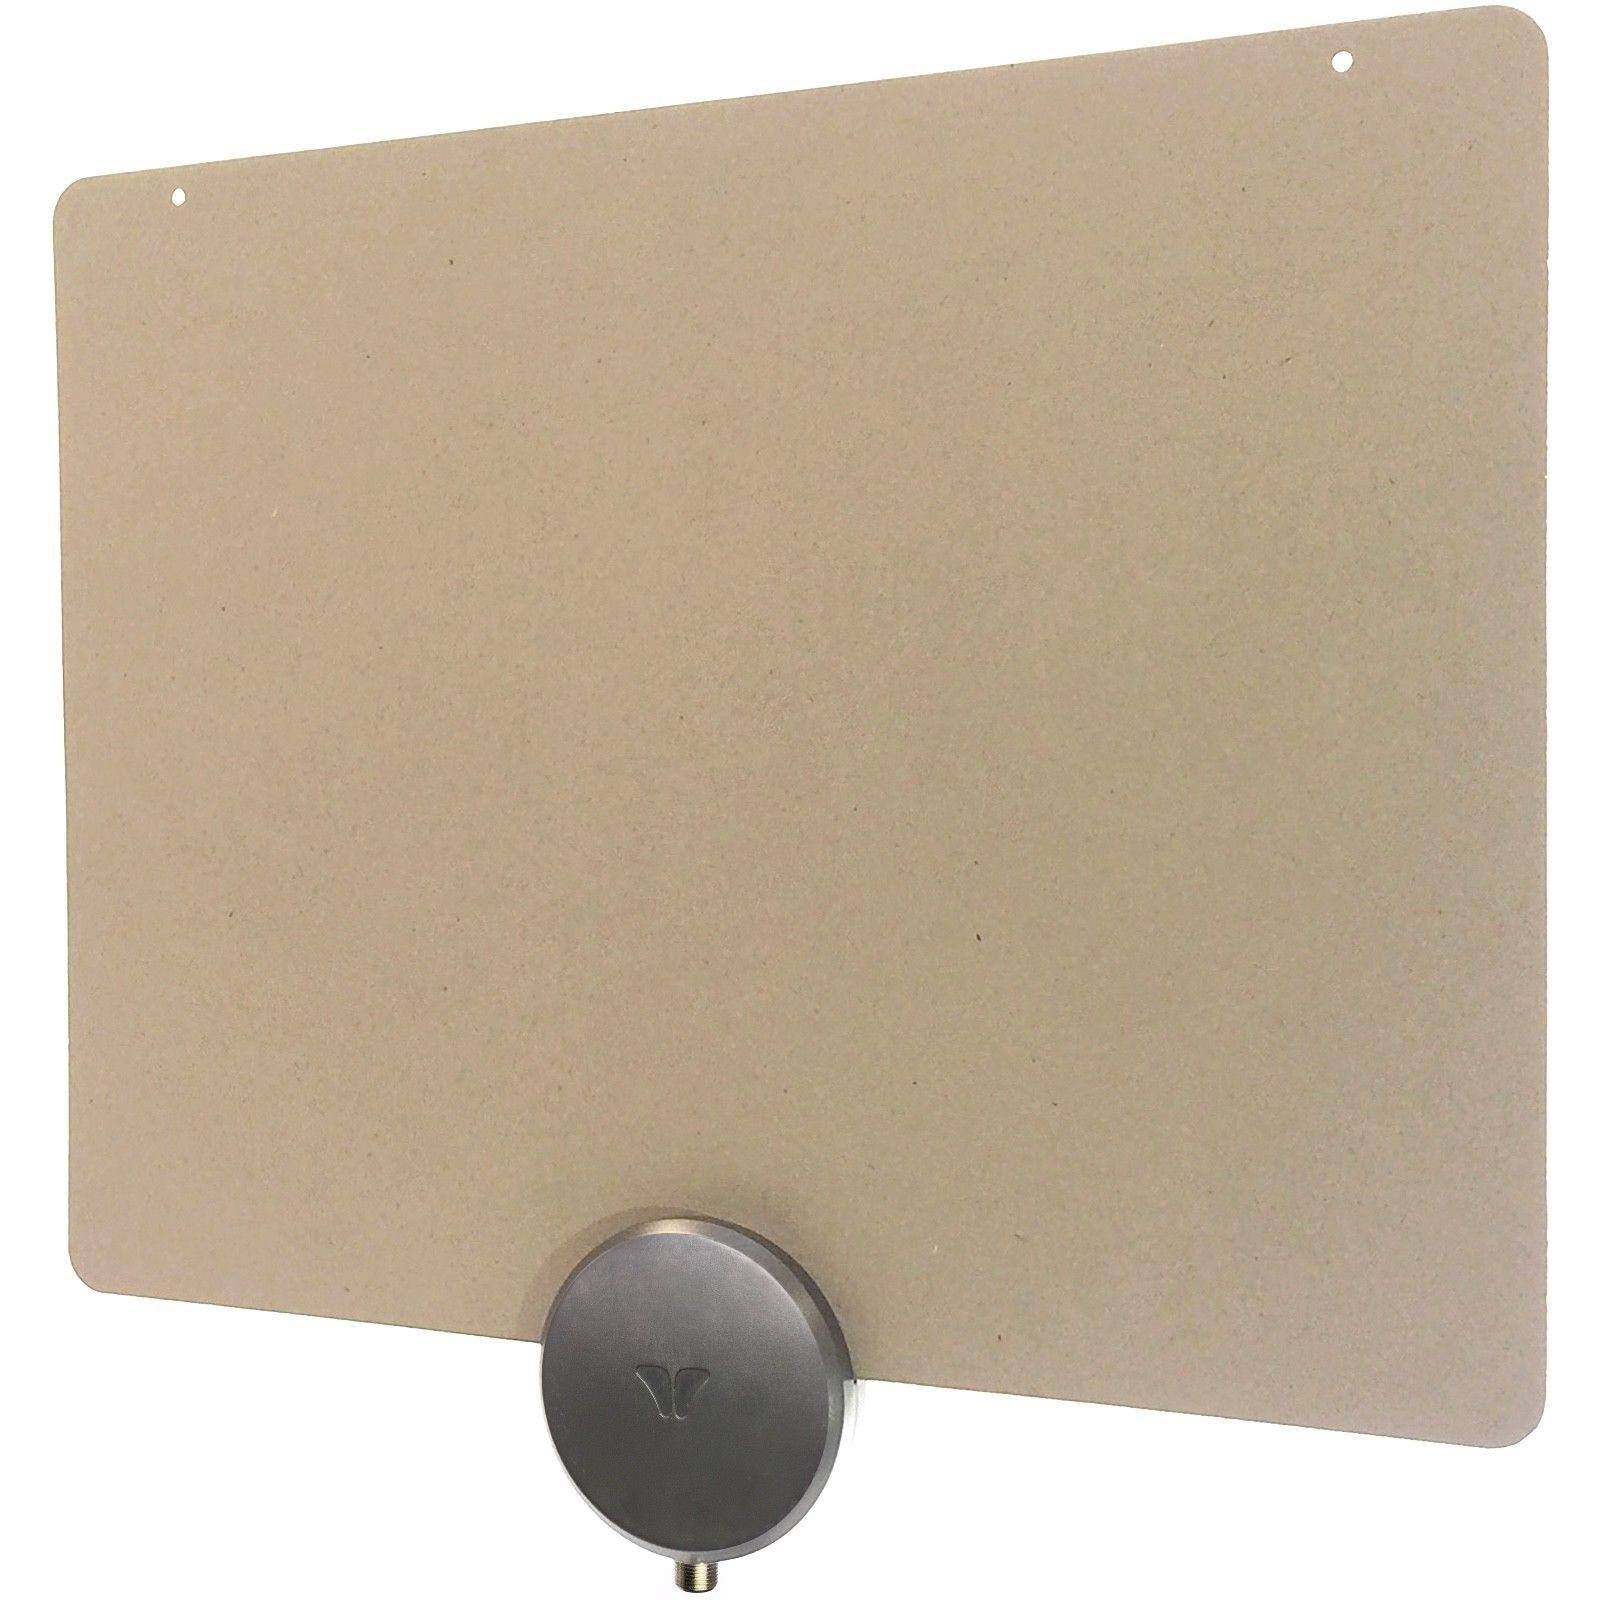 Mohu ReLeaf 50-Mile TV Antenna, Recycled Materials